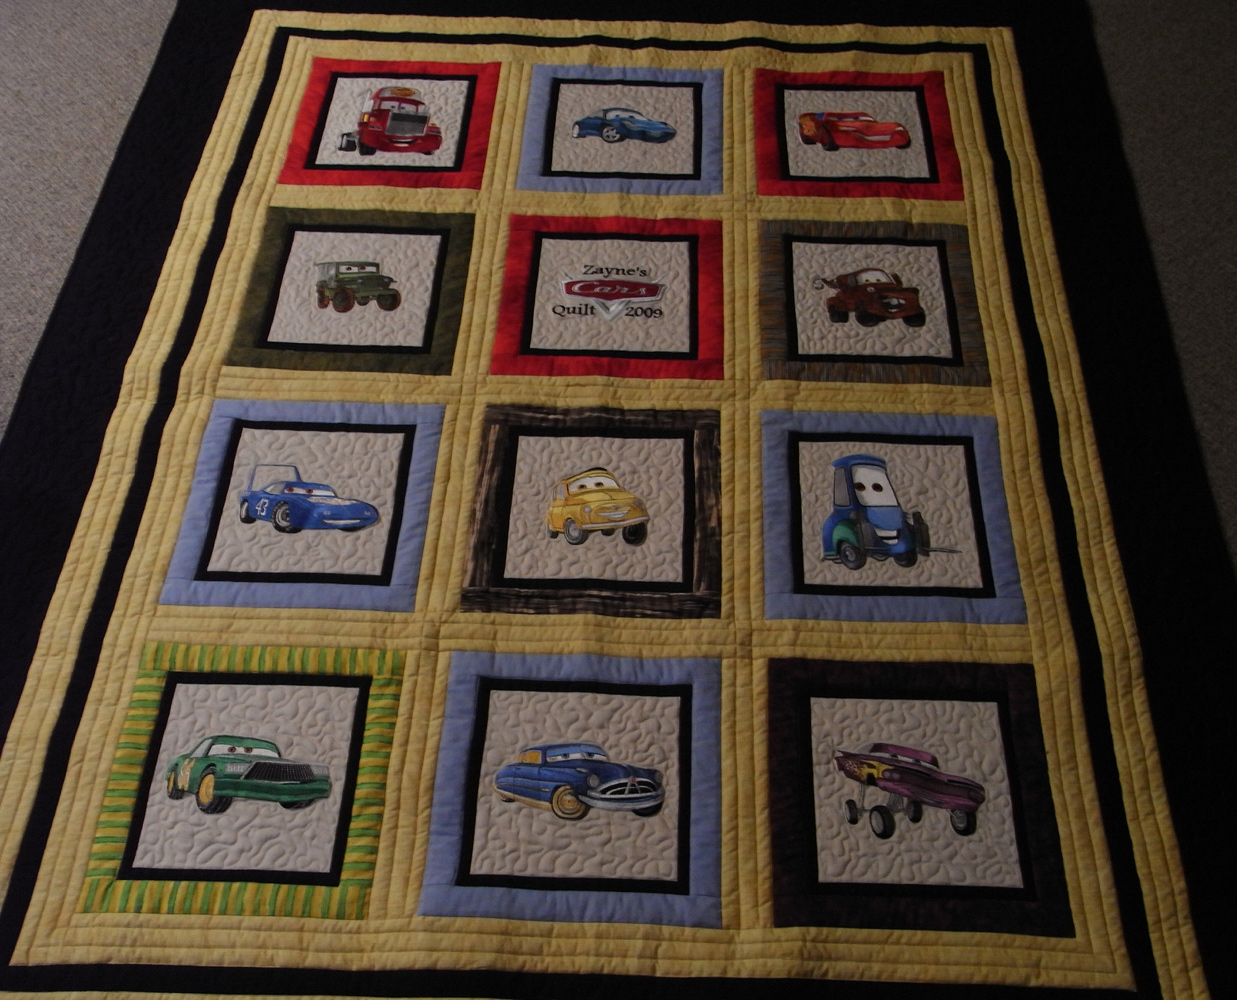 Embroidered Cars designs on quilt